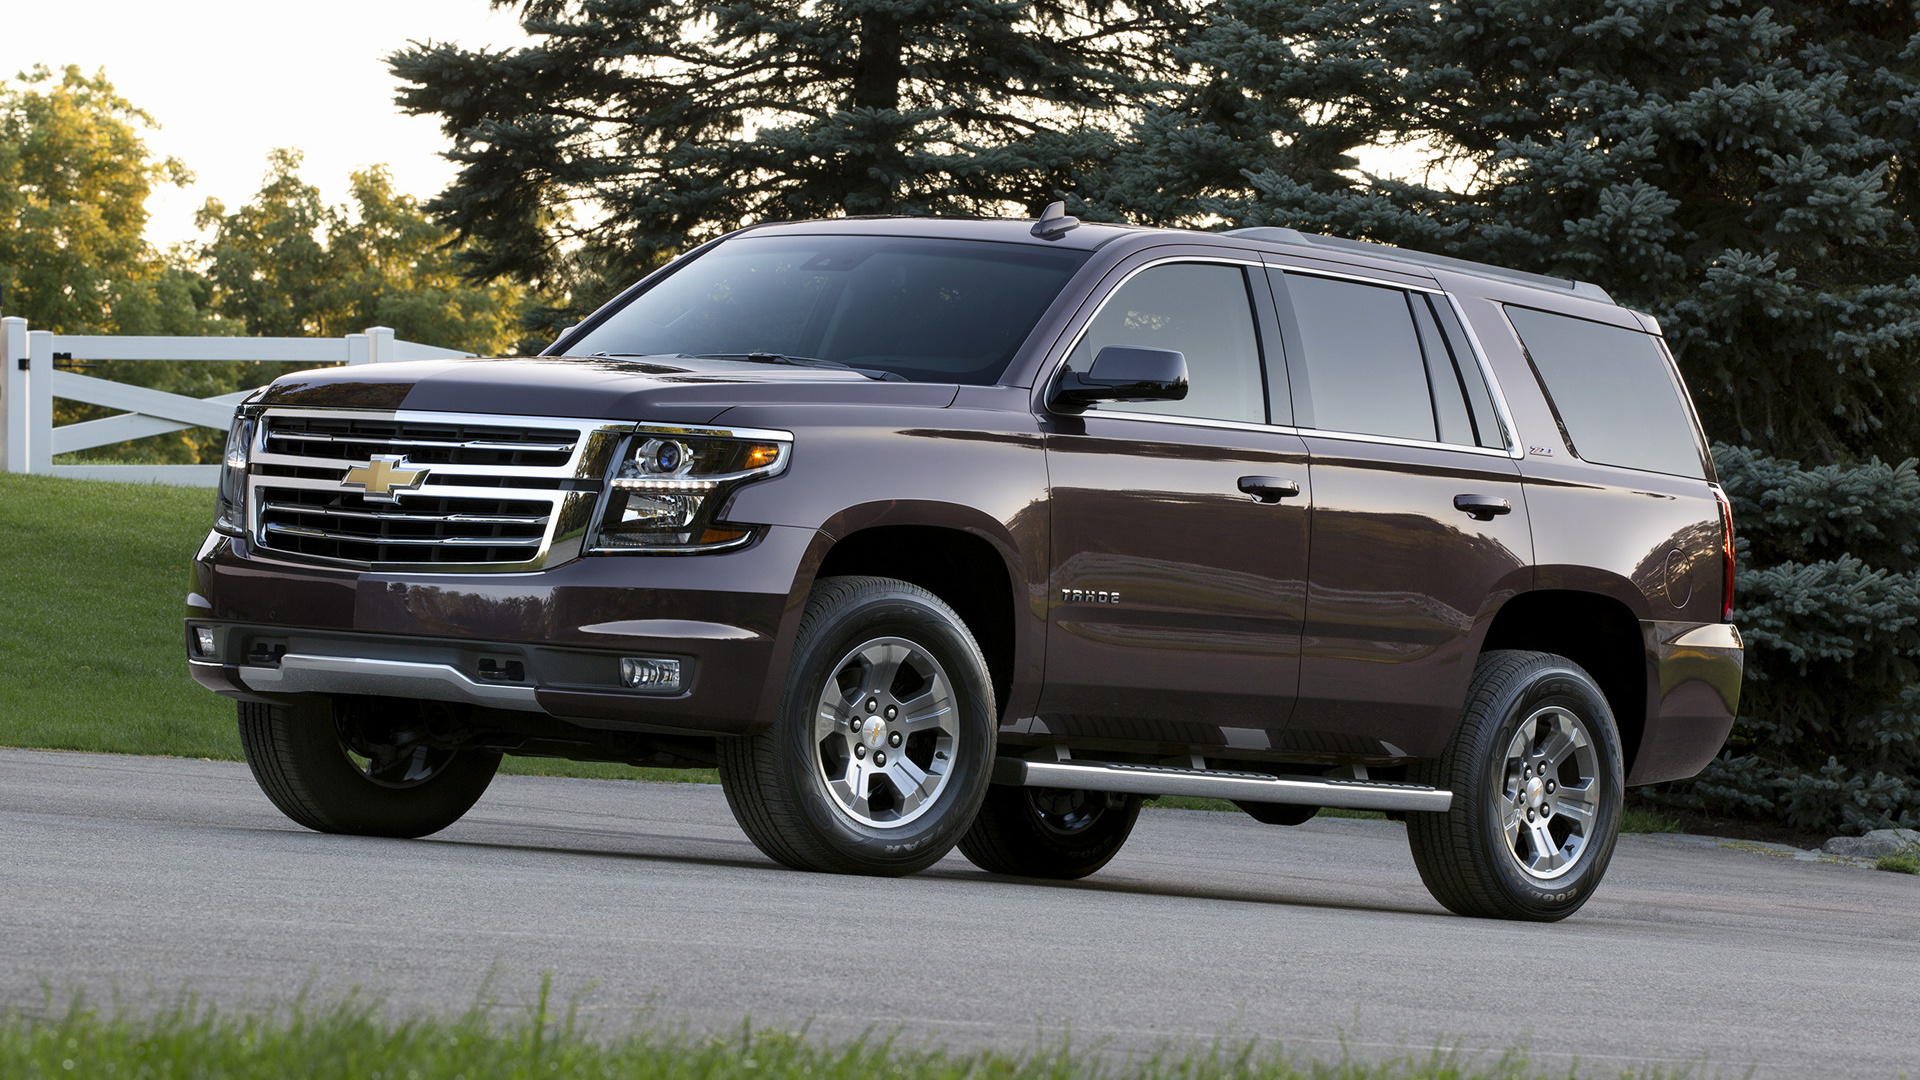 chevrolet tahoe z71 2015 wallpapers and hd images car. Black Bedroom Furniture Sets. Home Design Ideas